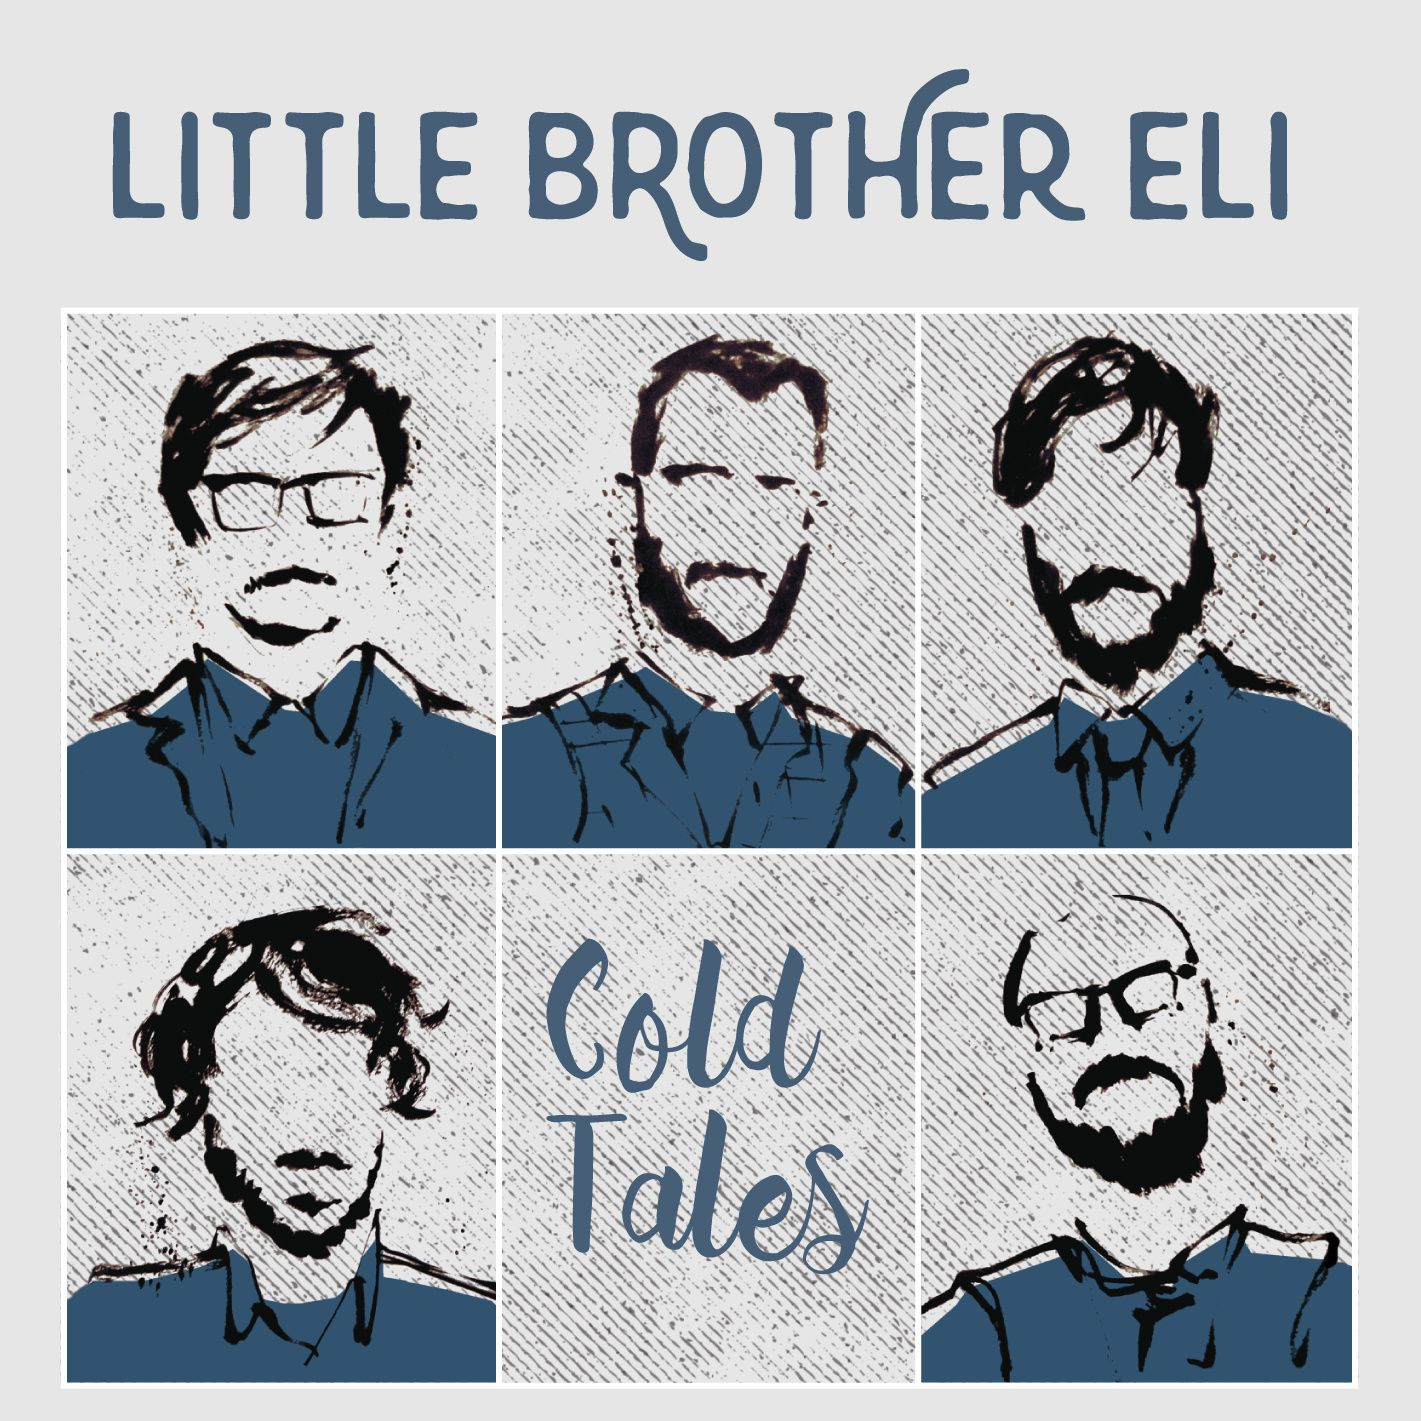 """CD review LITTLE BROTHER ELI """"Cold Tales"""""""